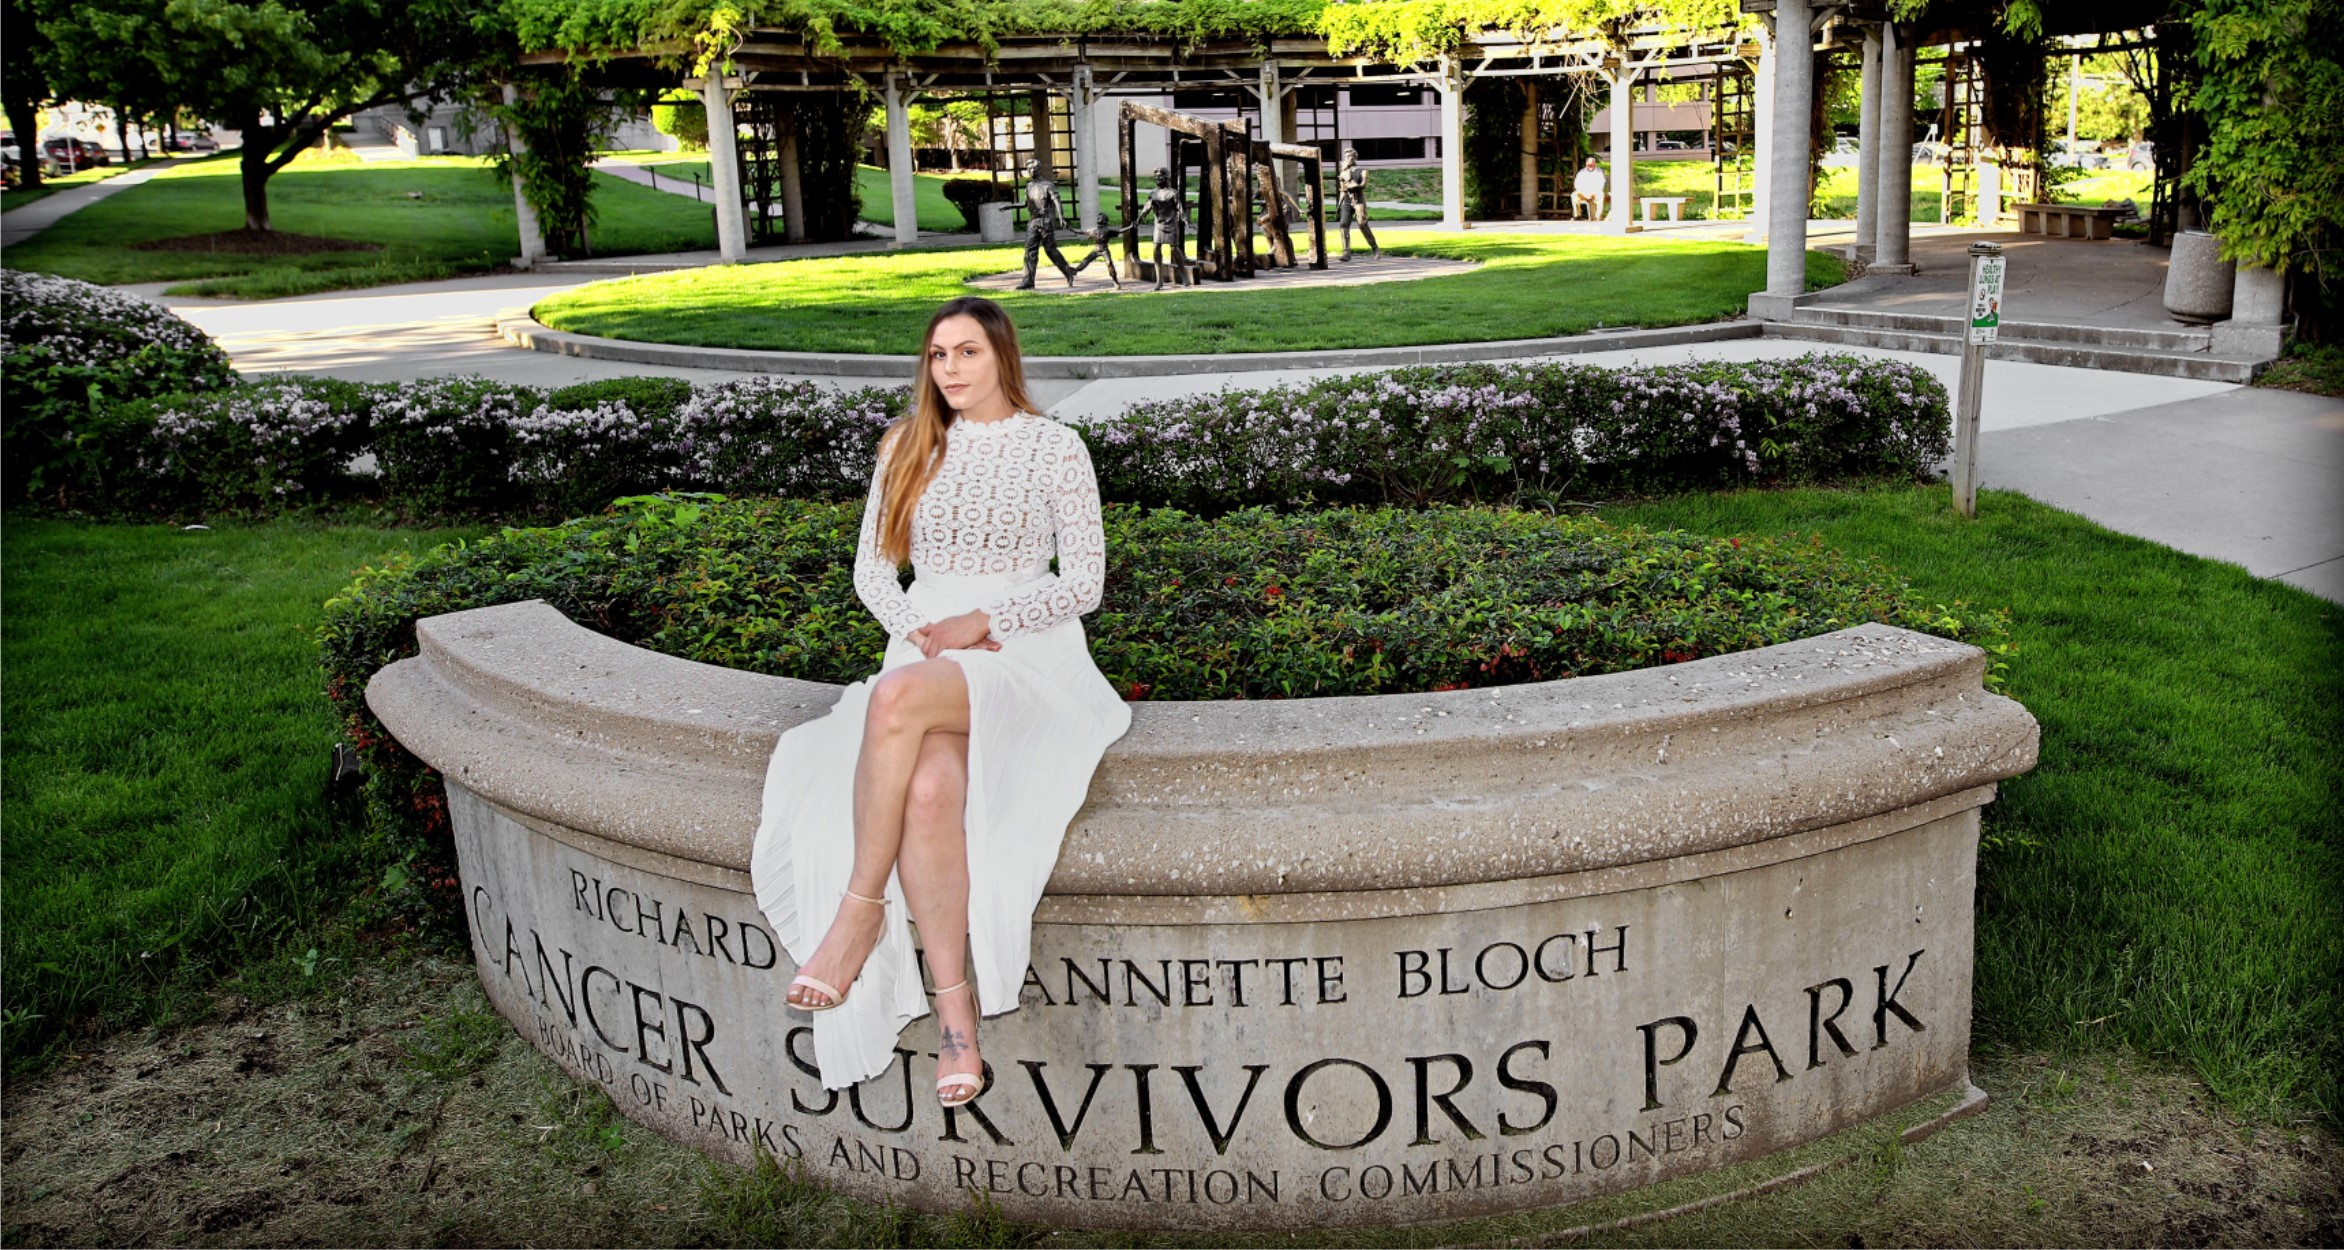 Bloch Cancer Survivors Park